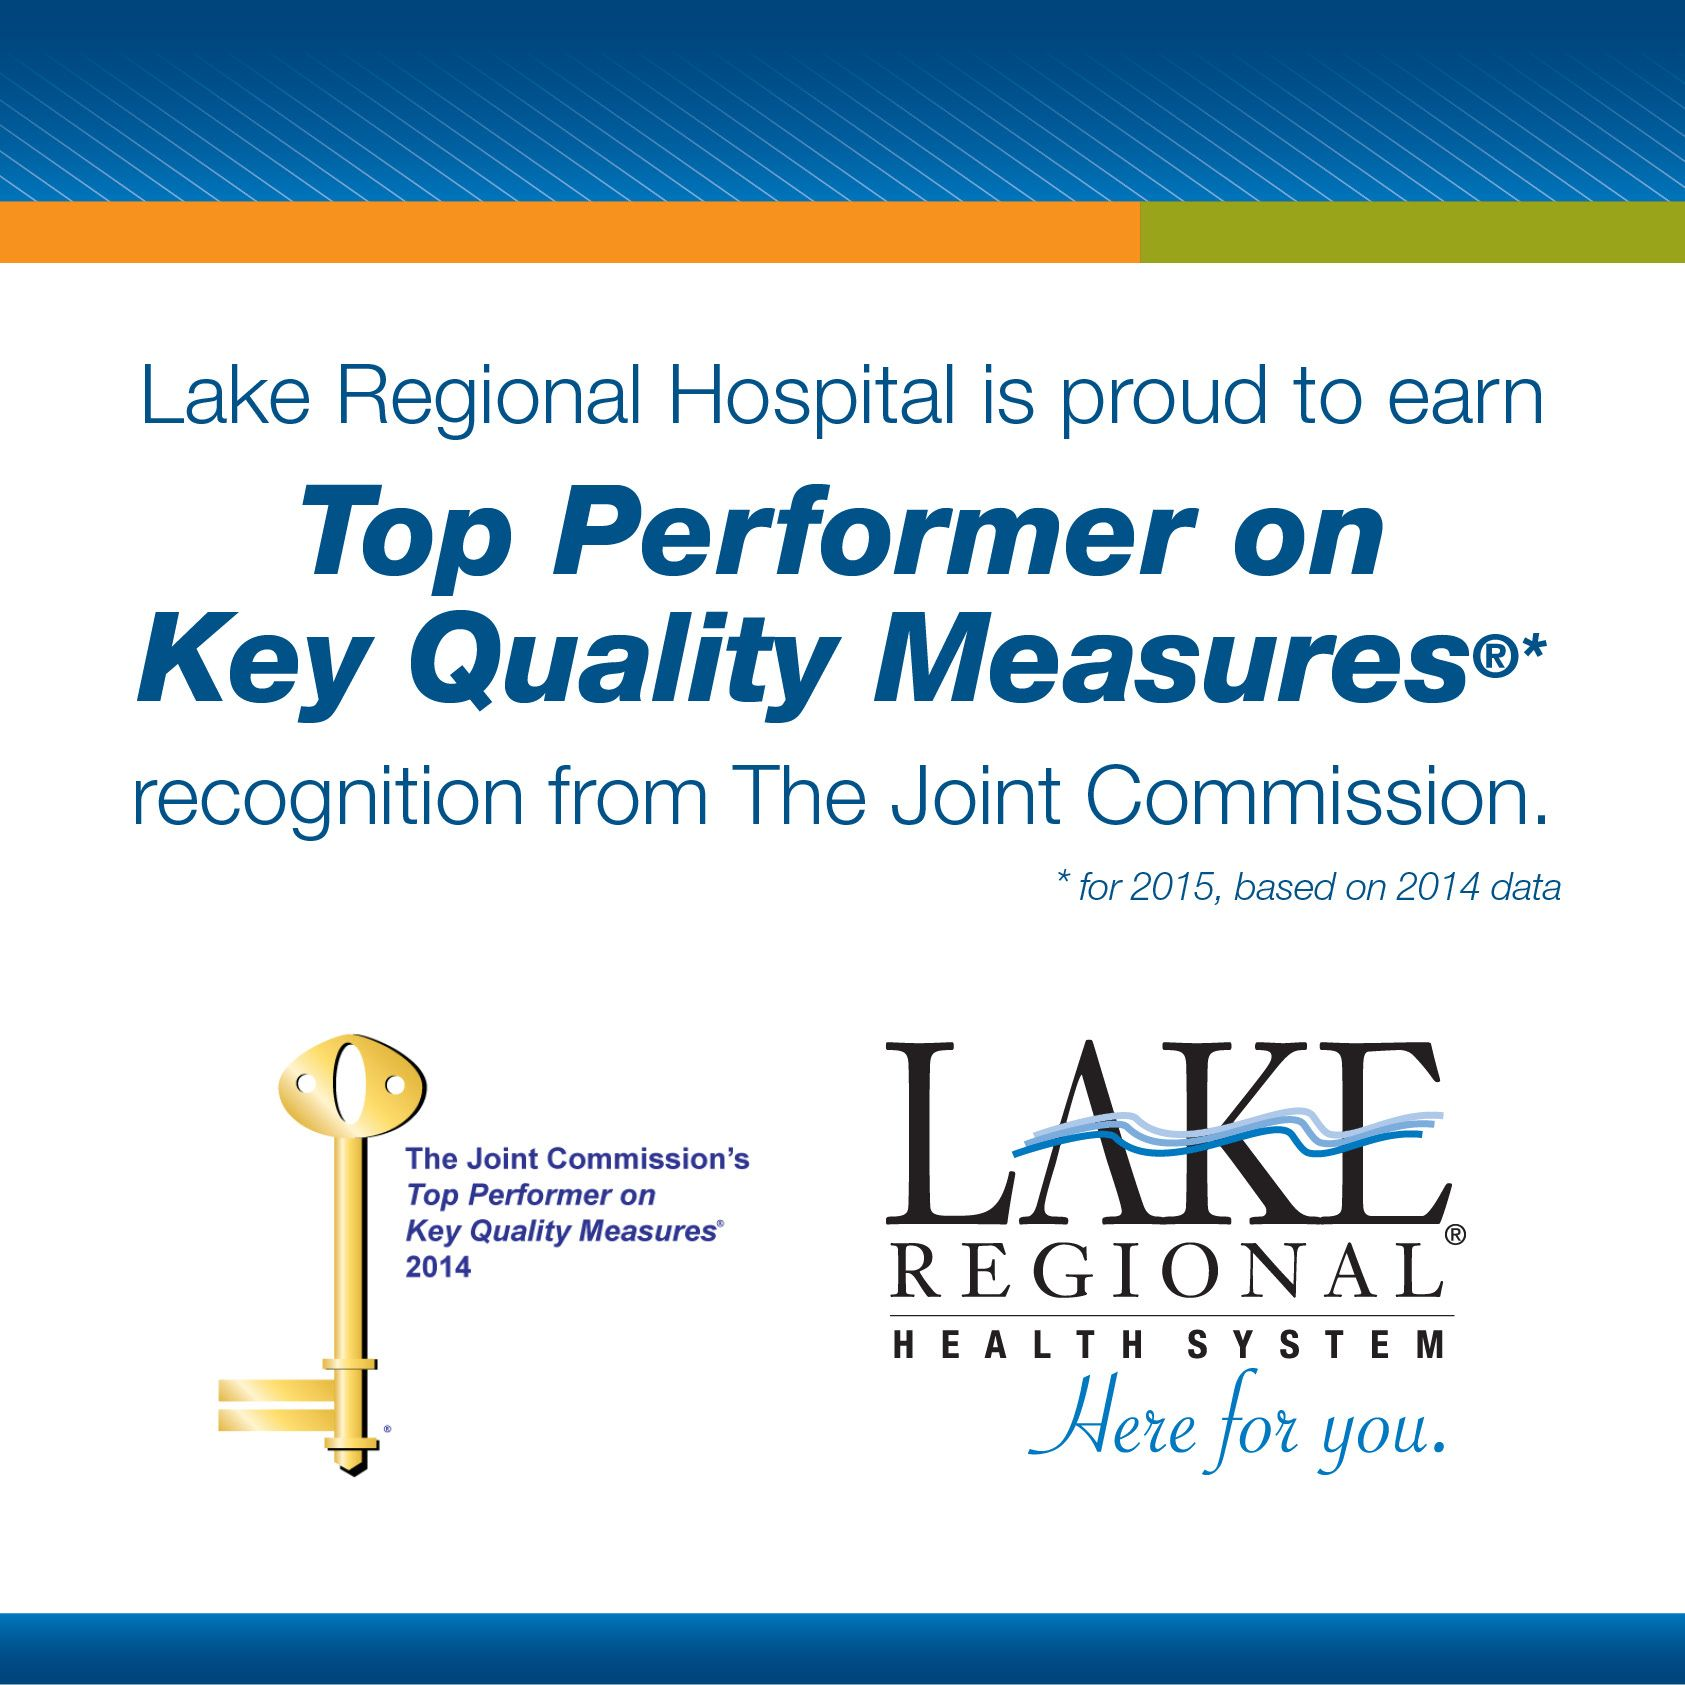 Lake Regional Hospital has exceeded expectations and been